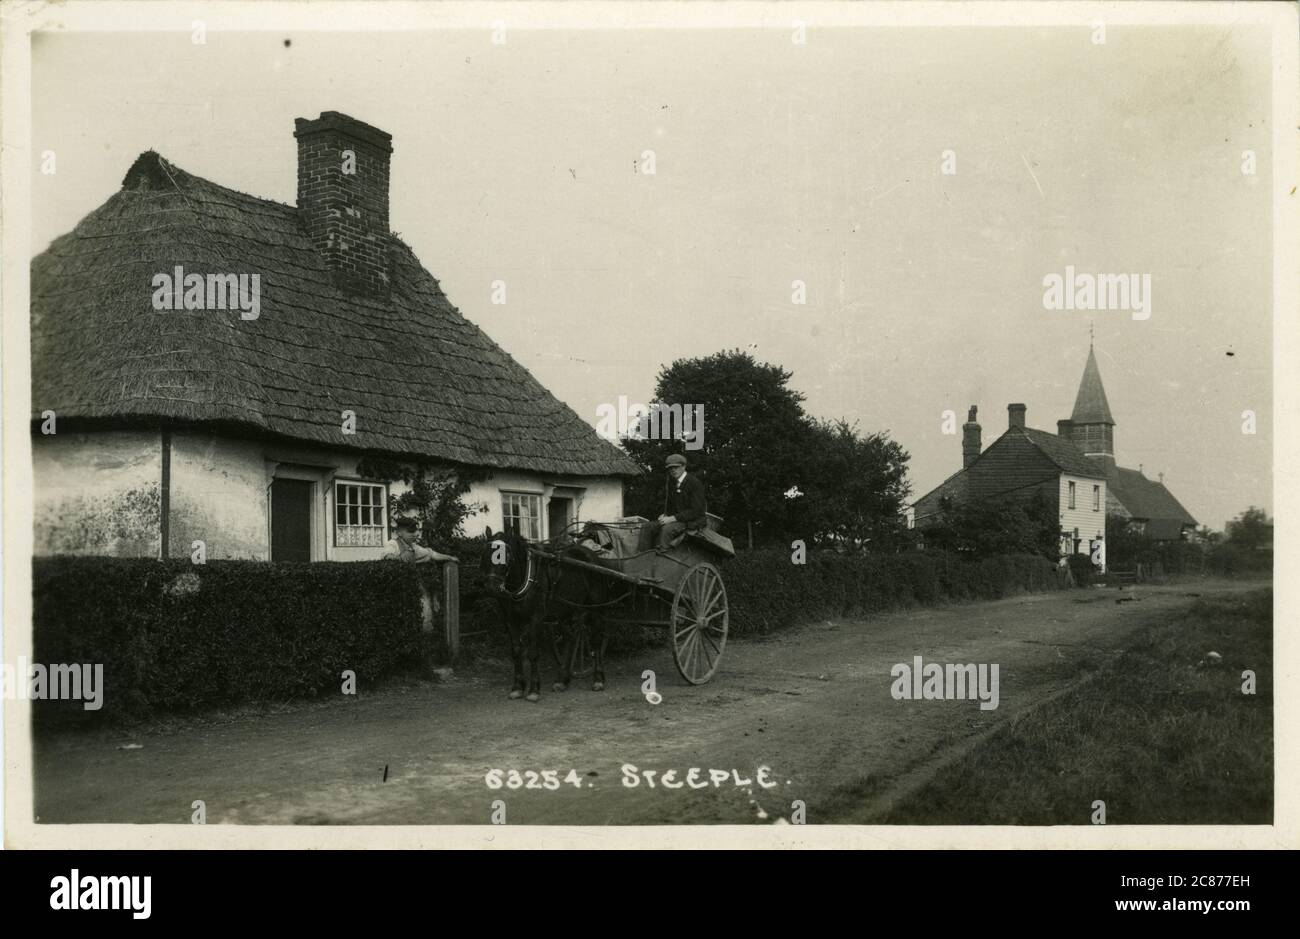 The Street, Steeple, Southminster, Mayland, Maldon, Essex, Angleterre. Banque D'Images